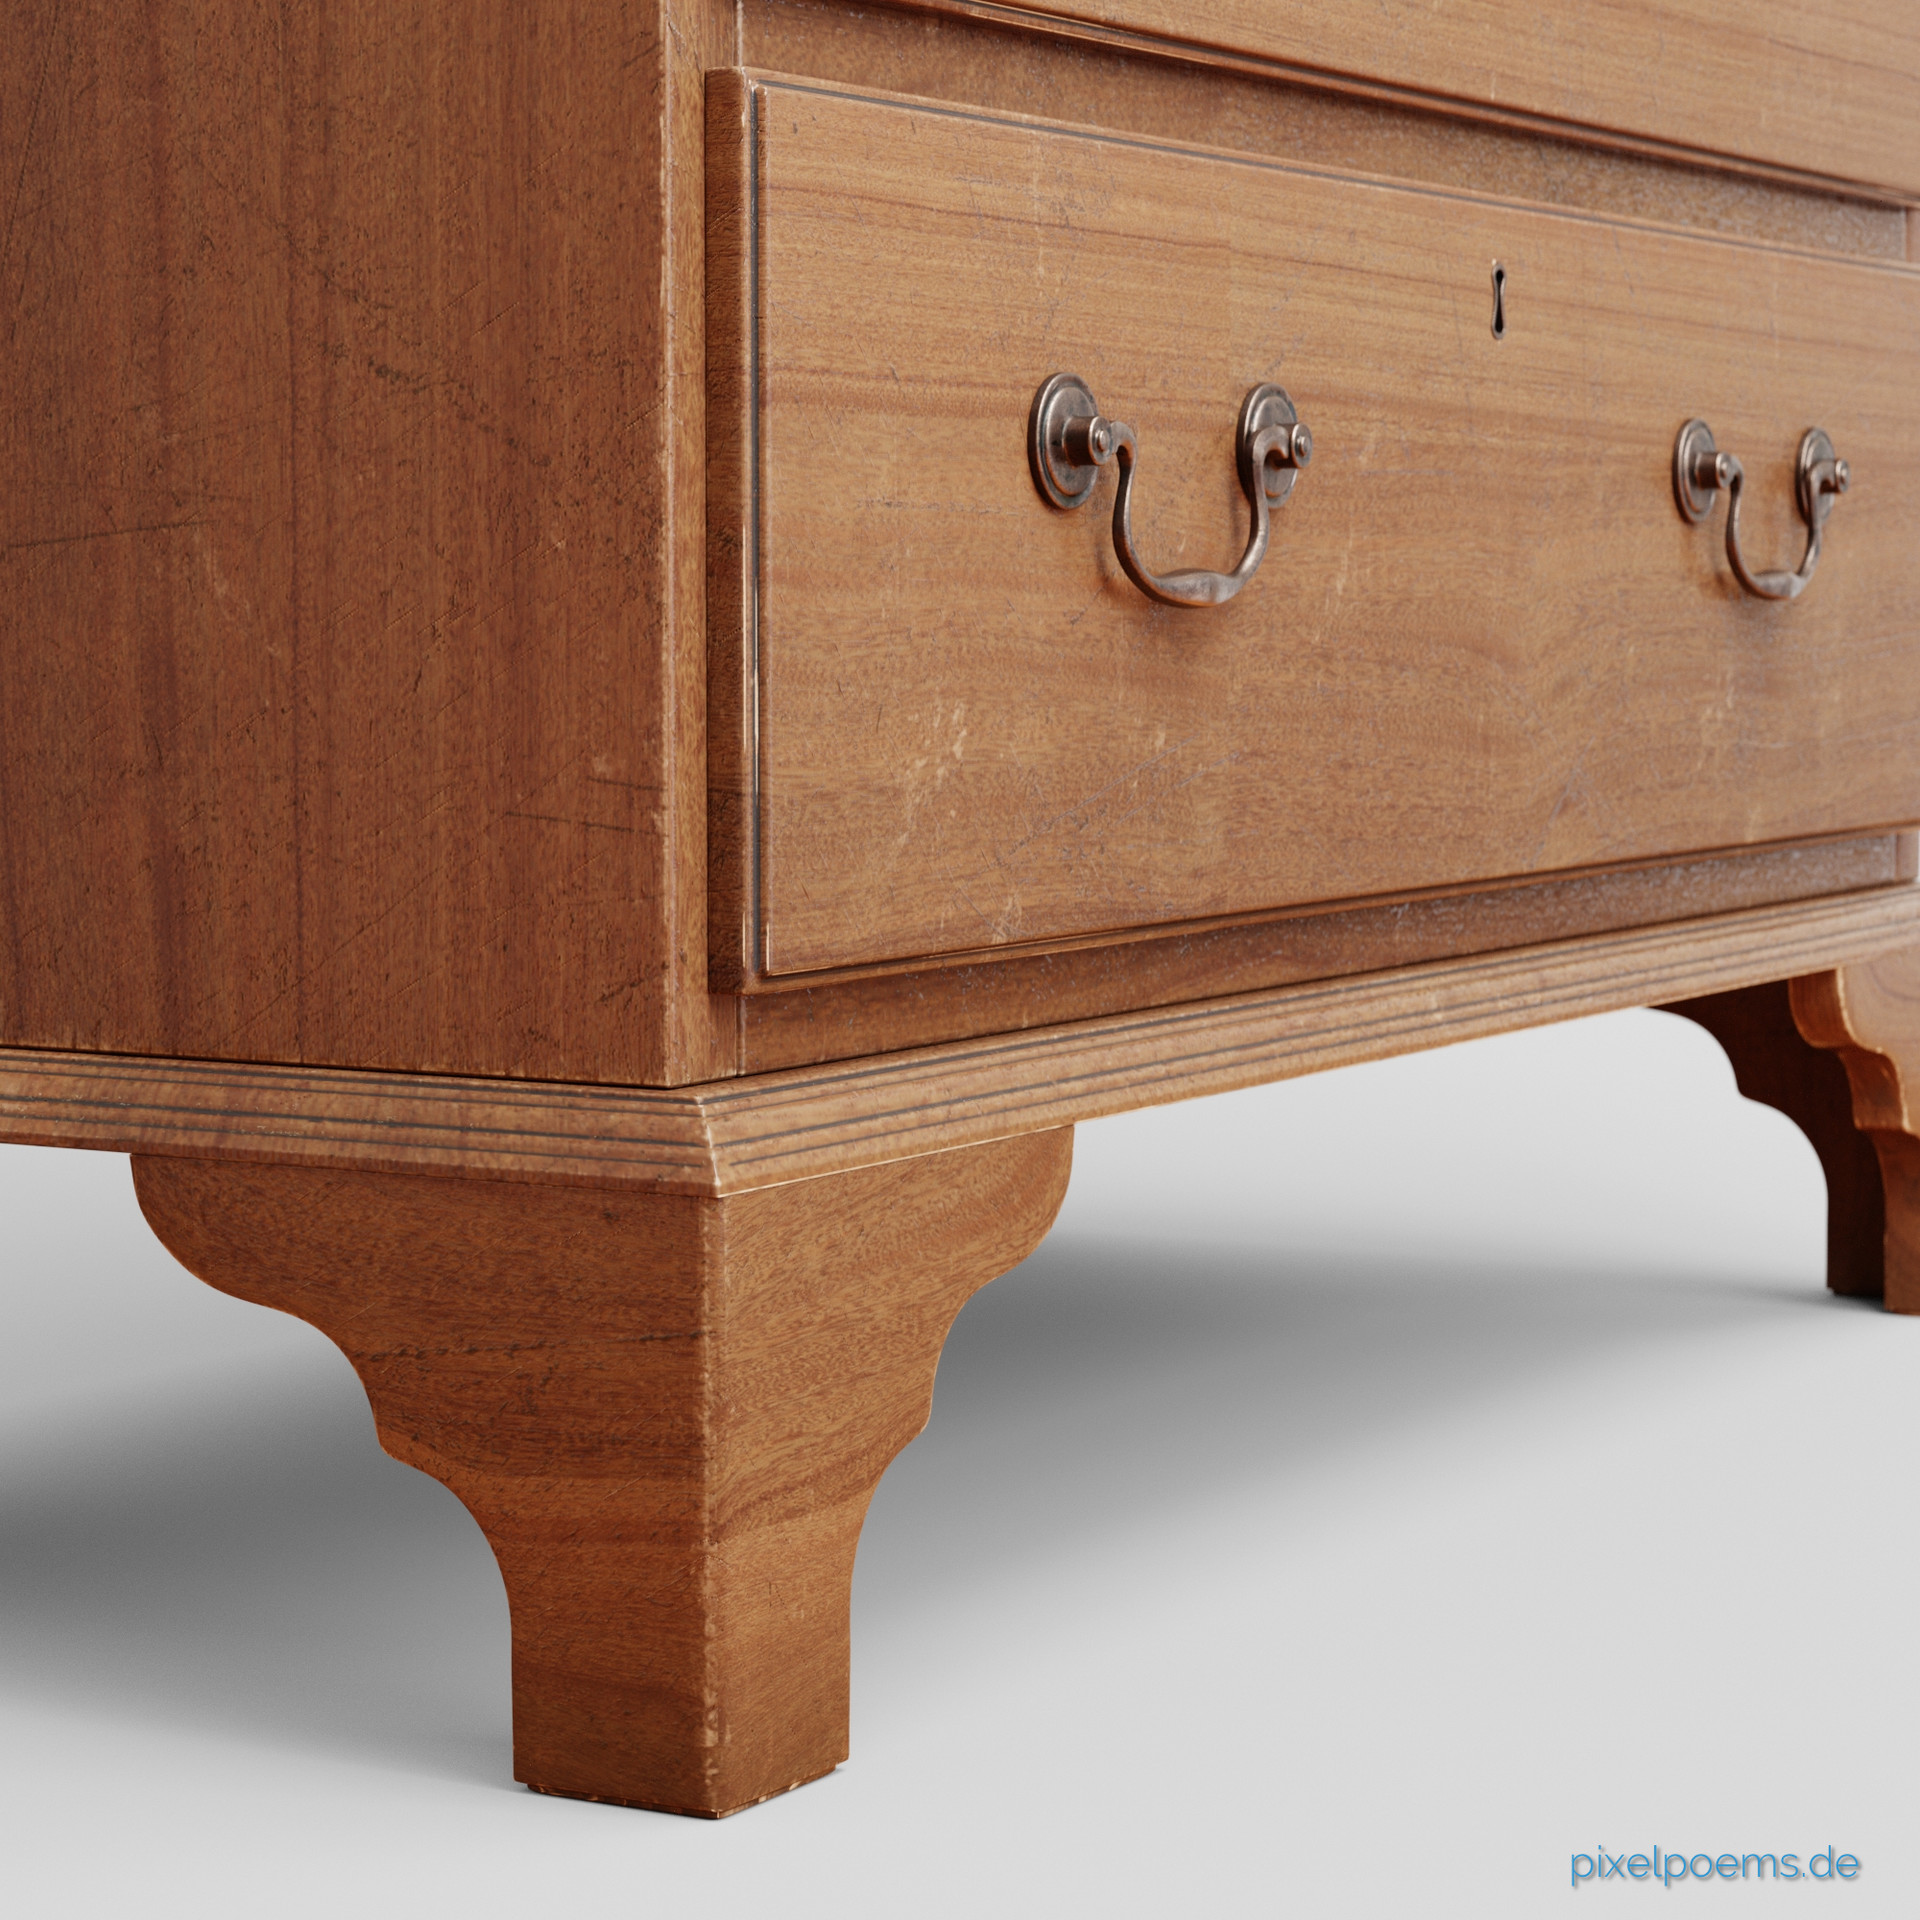 Karl andreas gross mahagony chest of drawers webversion 07